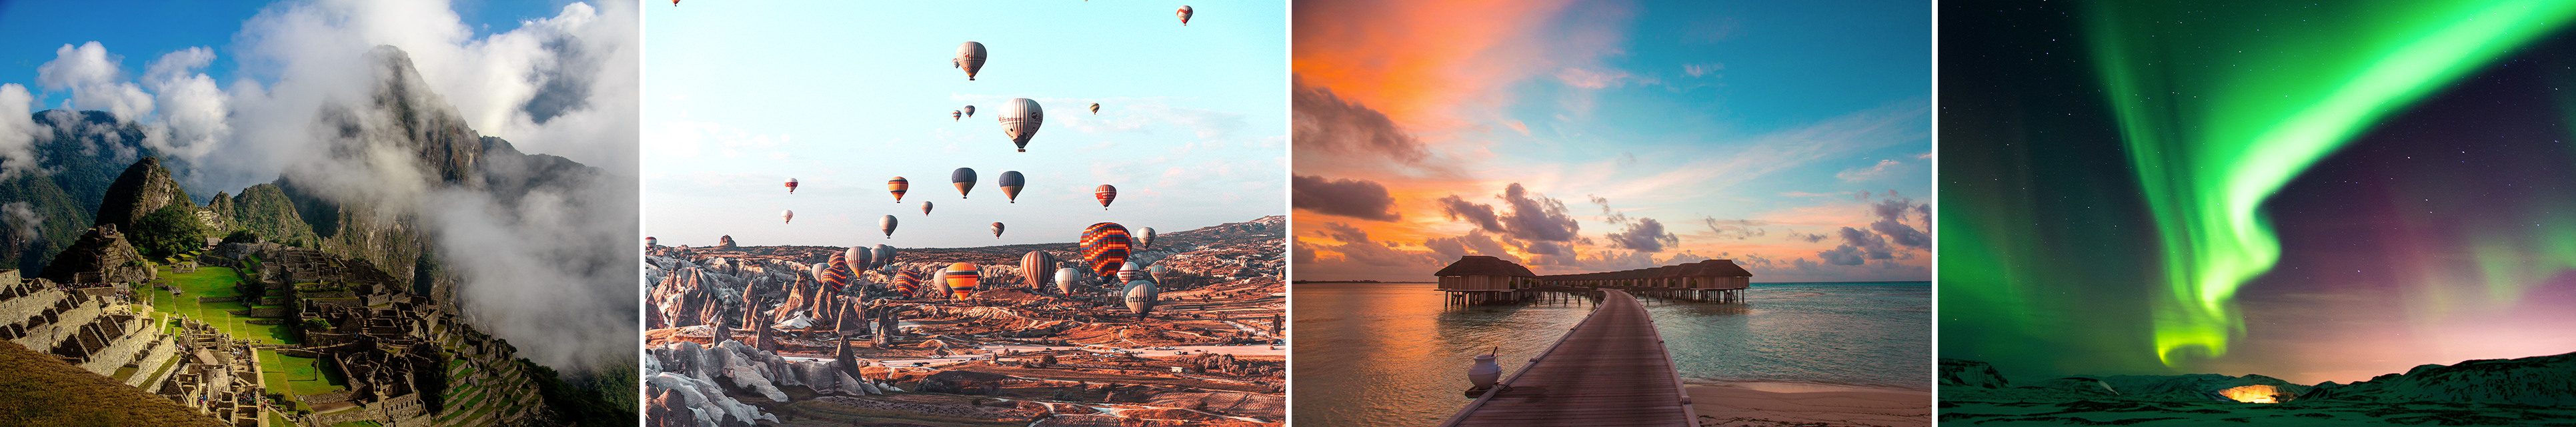 A collage of pictures including the northern lights, a hot air balloon festival, some over-water bungalows, and the ruins of an old village in a mountainside